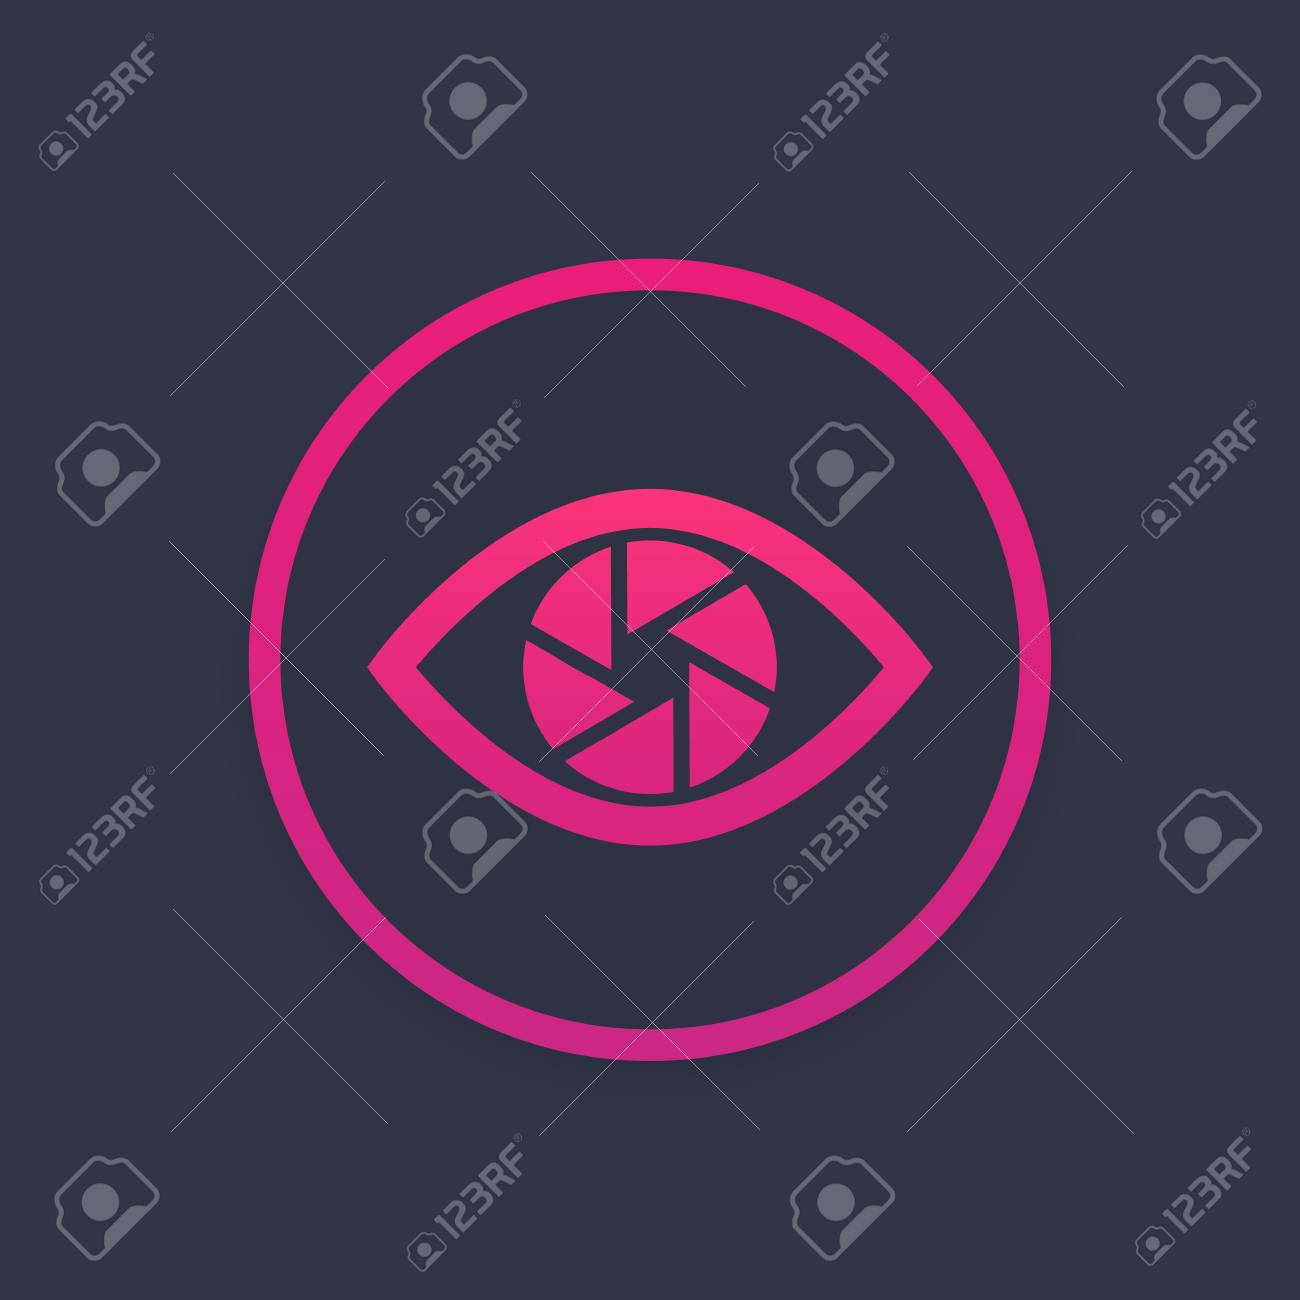 Eye with aperture symbol, vector icon - 91689983